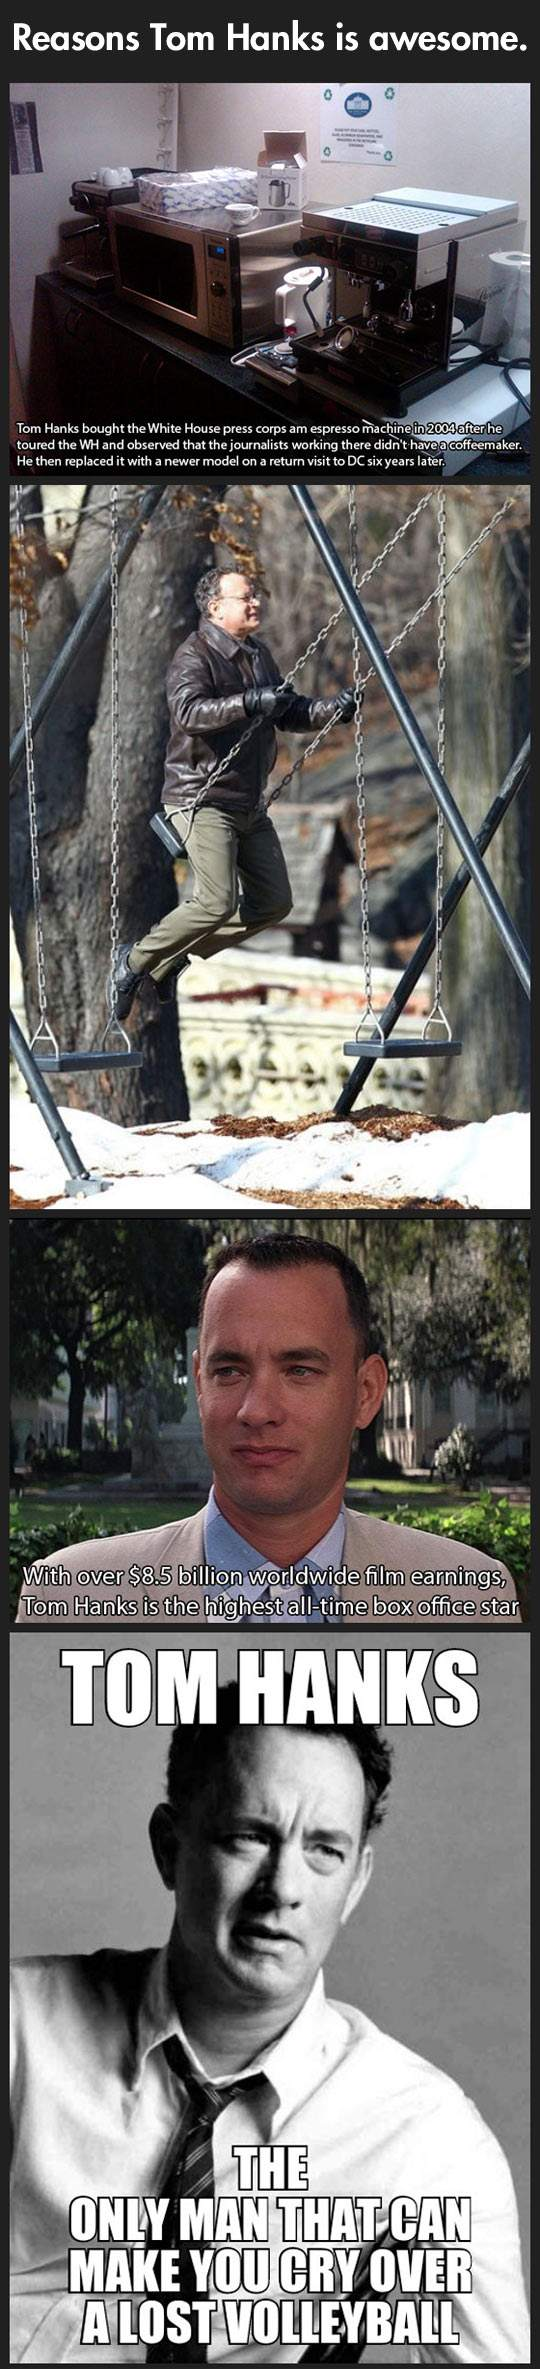 Reasons Tom Hanks is awesome.